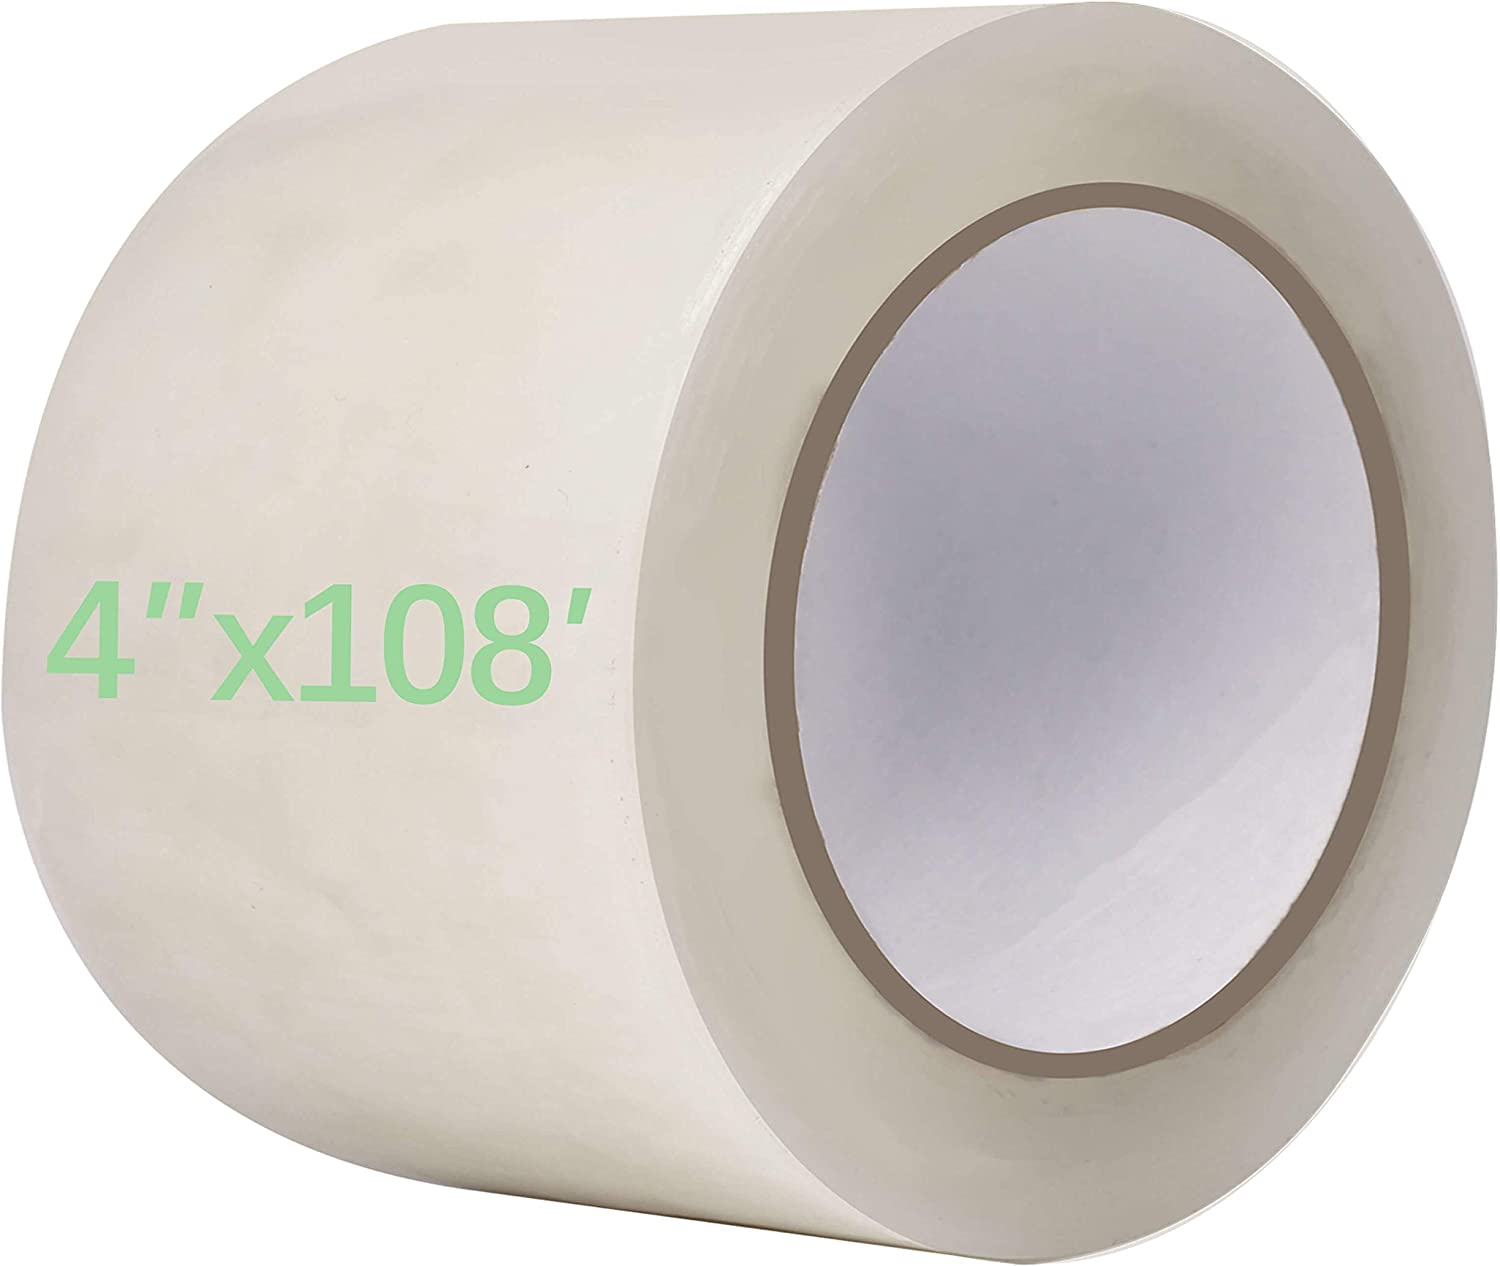 Outlet ☆ Free Shipping vensovo Greenhouse Covering Plastic Clearance SALE Limited time Repair 4â Heavy - Duty Tape